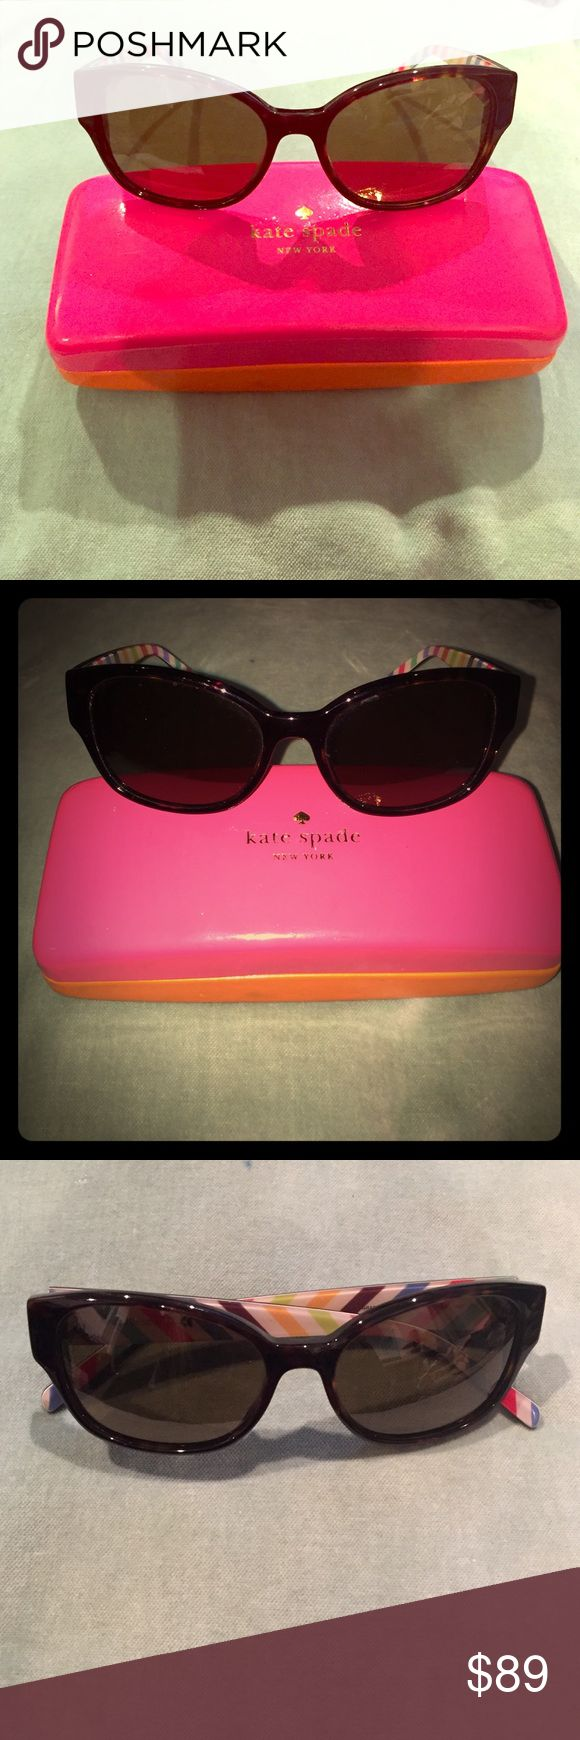 Kate Spade Polarized Sunglasses Adorable Kate Spade Polarized Sunglasses. Brown/Tortoise color with colorful striped pattern inside arms. Only worn a few times. Perfect for small face. kate spade Accessories Sunglasses